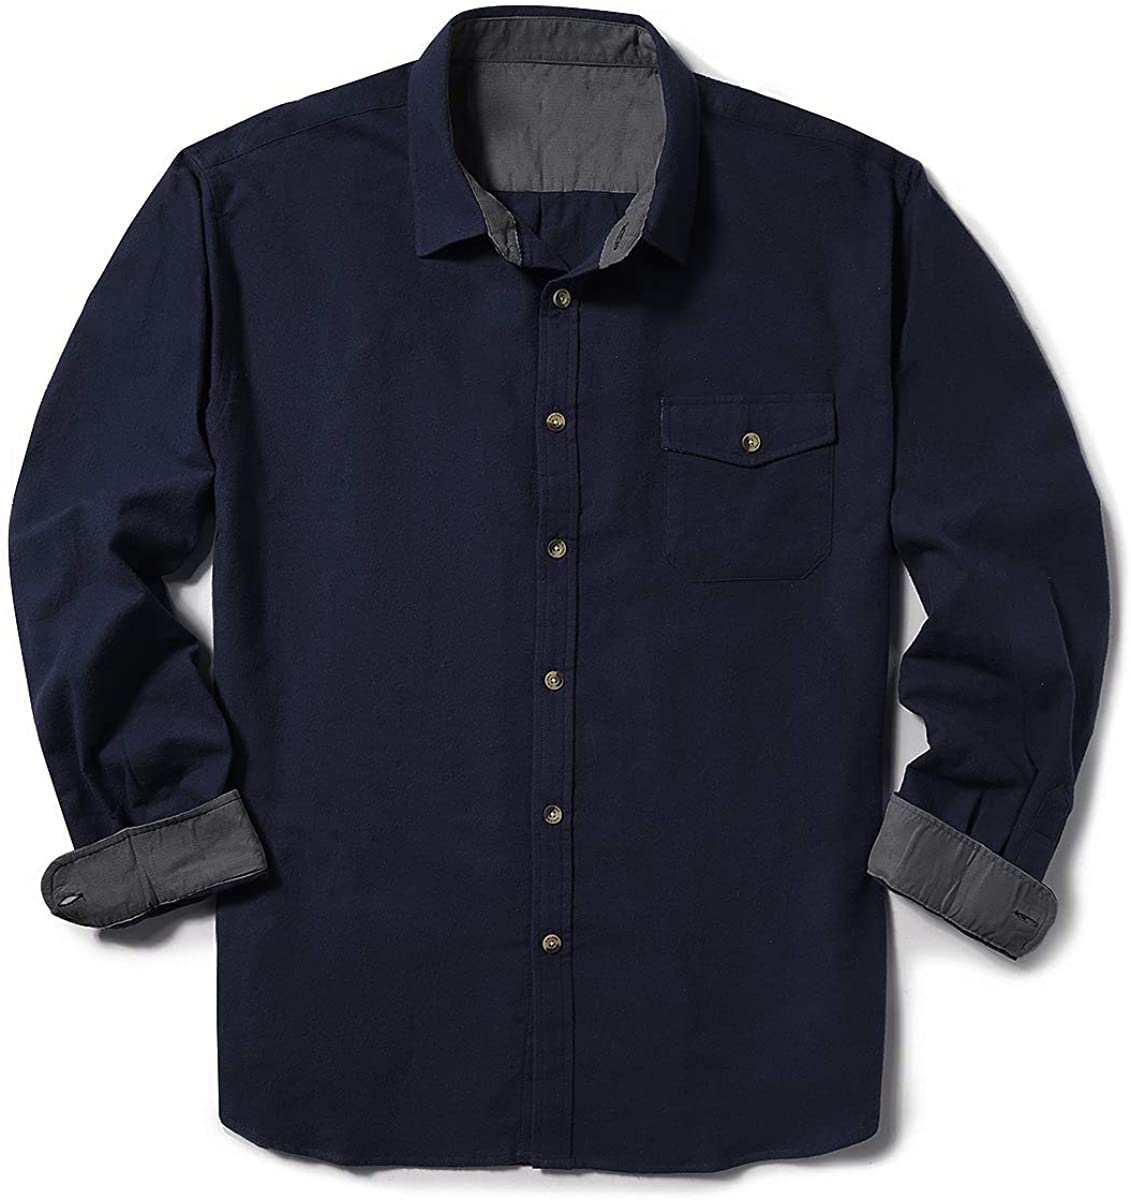 ZIOLOMA Men's Long Sleeve Flannel Solid Dress Shirts Western Button Down Shirts